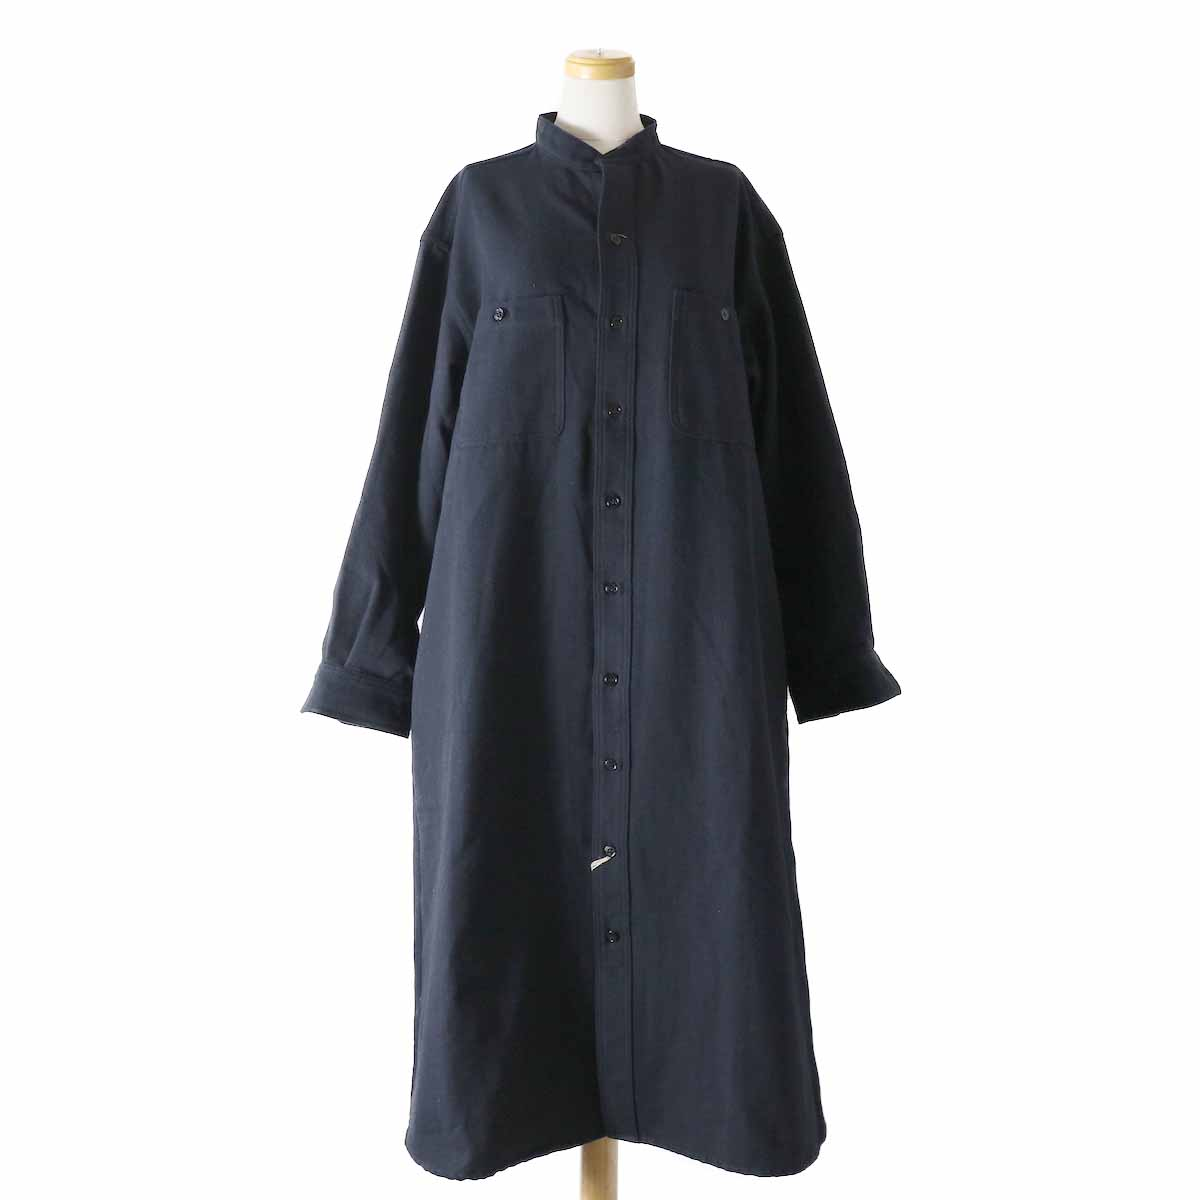 orSlow / Ladies Stand Collar Long Sleeve Shirt -NAVY